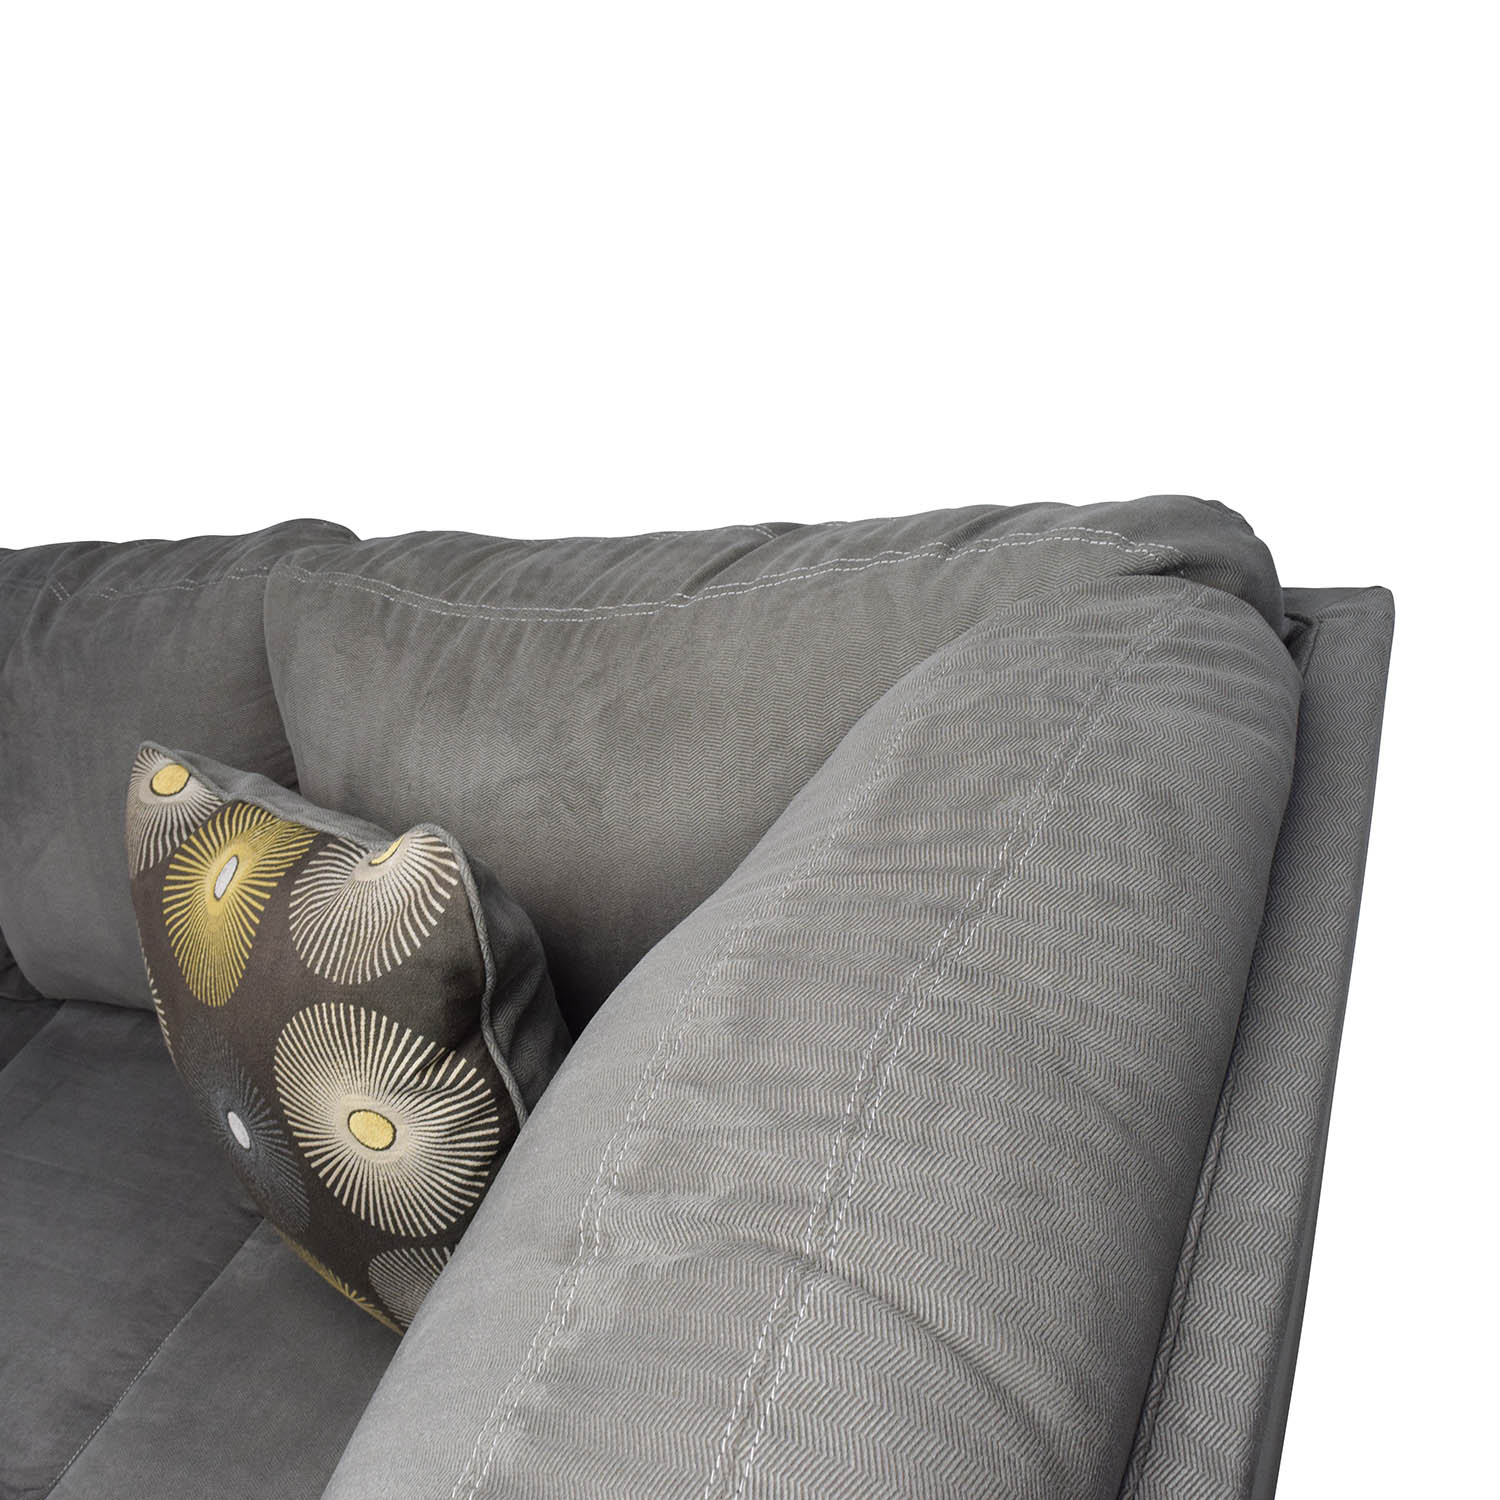 Peachy 30 Off Ashley Furniture Ashley Furniture Waverly Gray Sectional Sofa Sofas Alphanode Cool Chair Designs And Ideas Alphanodeonline